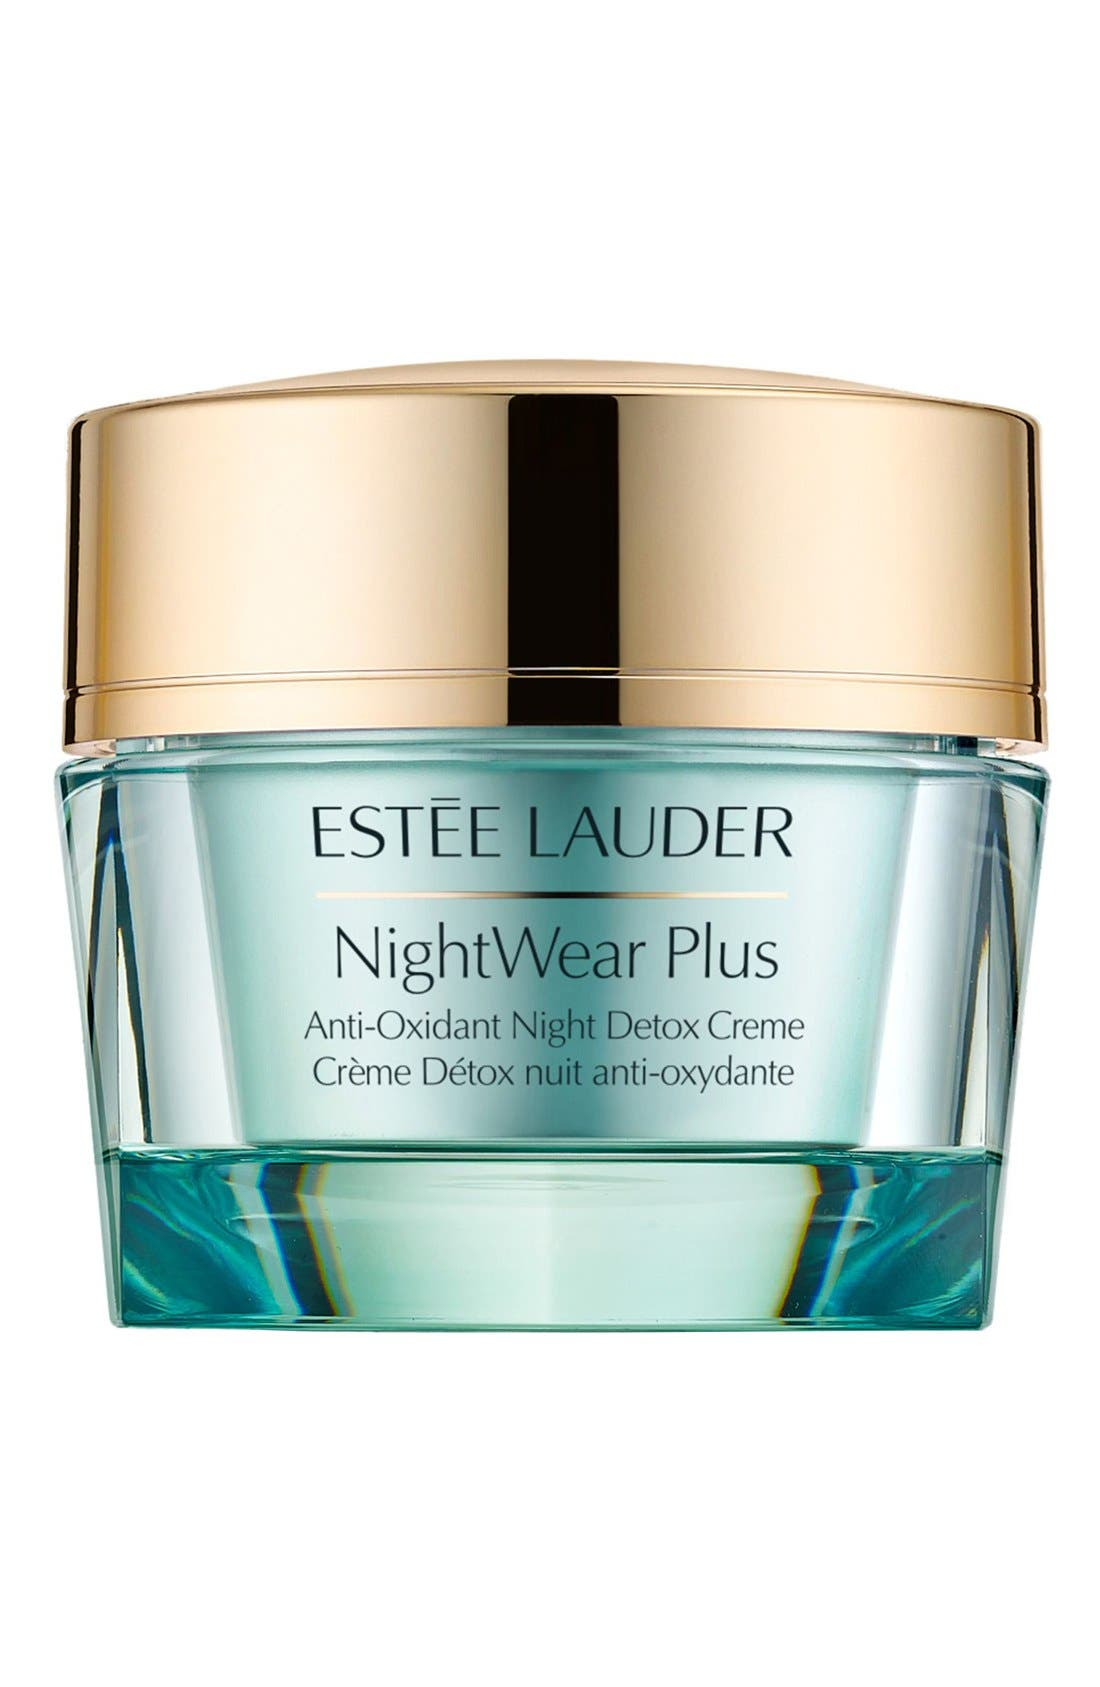 Estée Lauder NightWear Plus Antioxidant Night Detox Cream